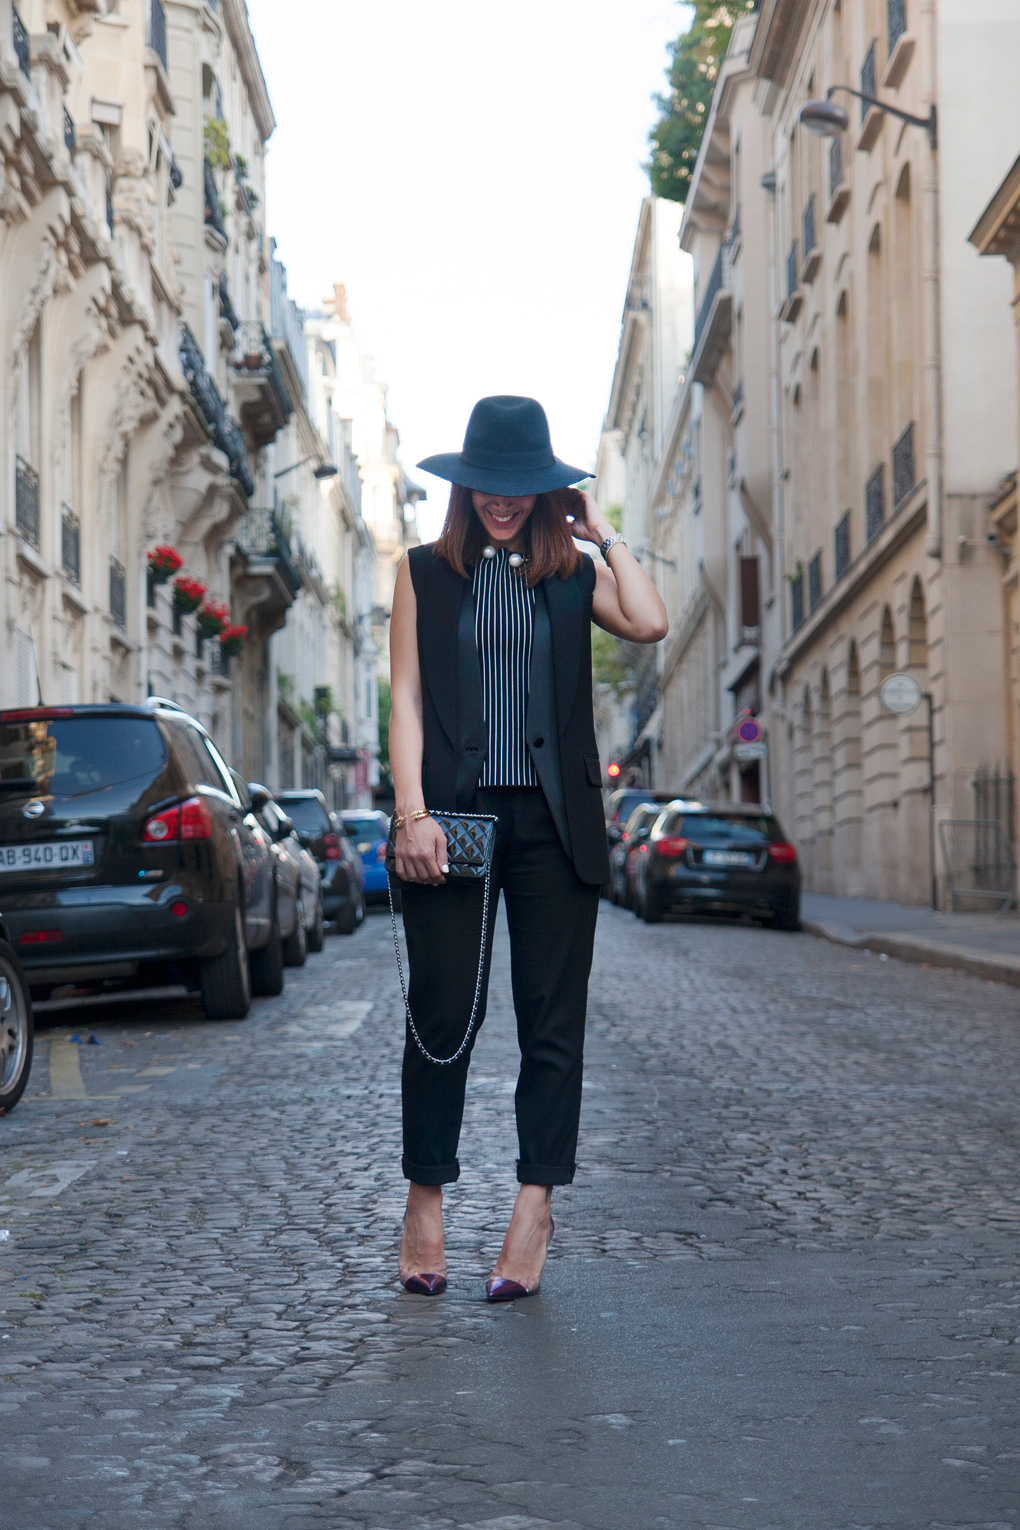 Lyla_Loves_Fashion_Alexander_wang_Paris_Fashion_Week_Street_Style_1721